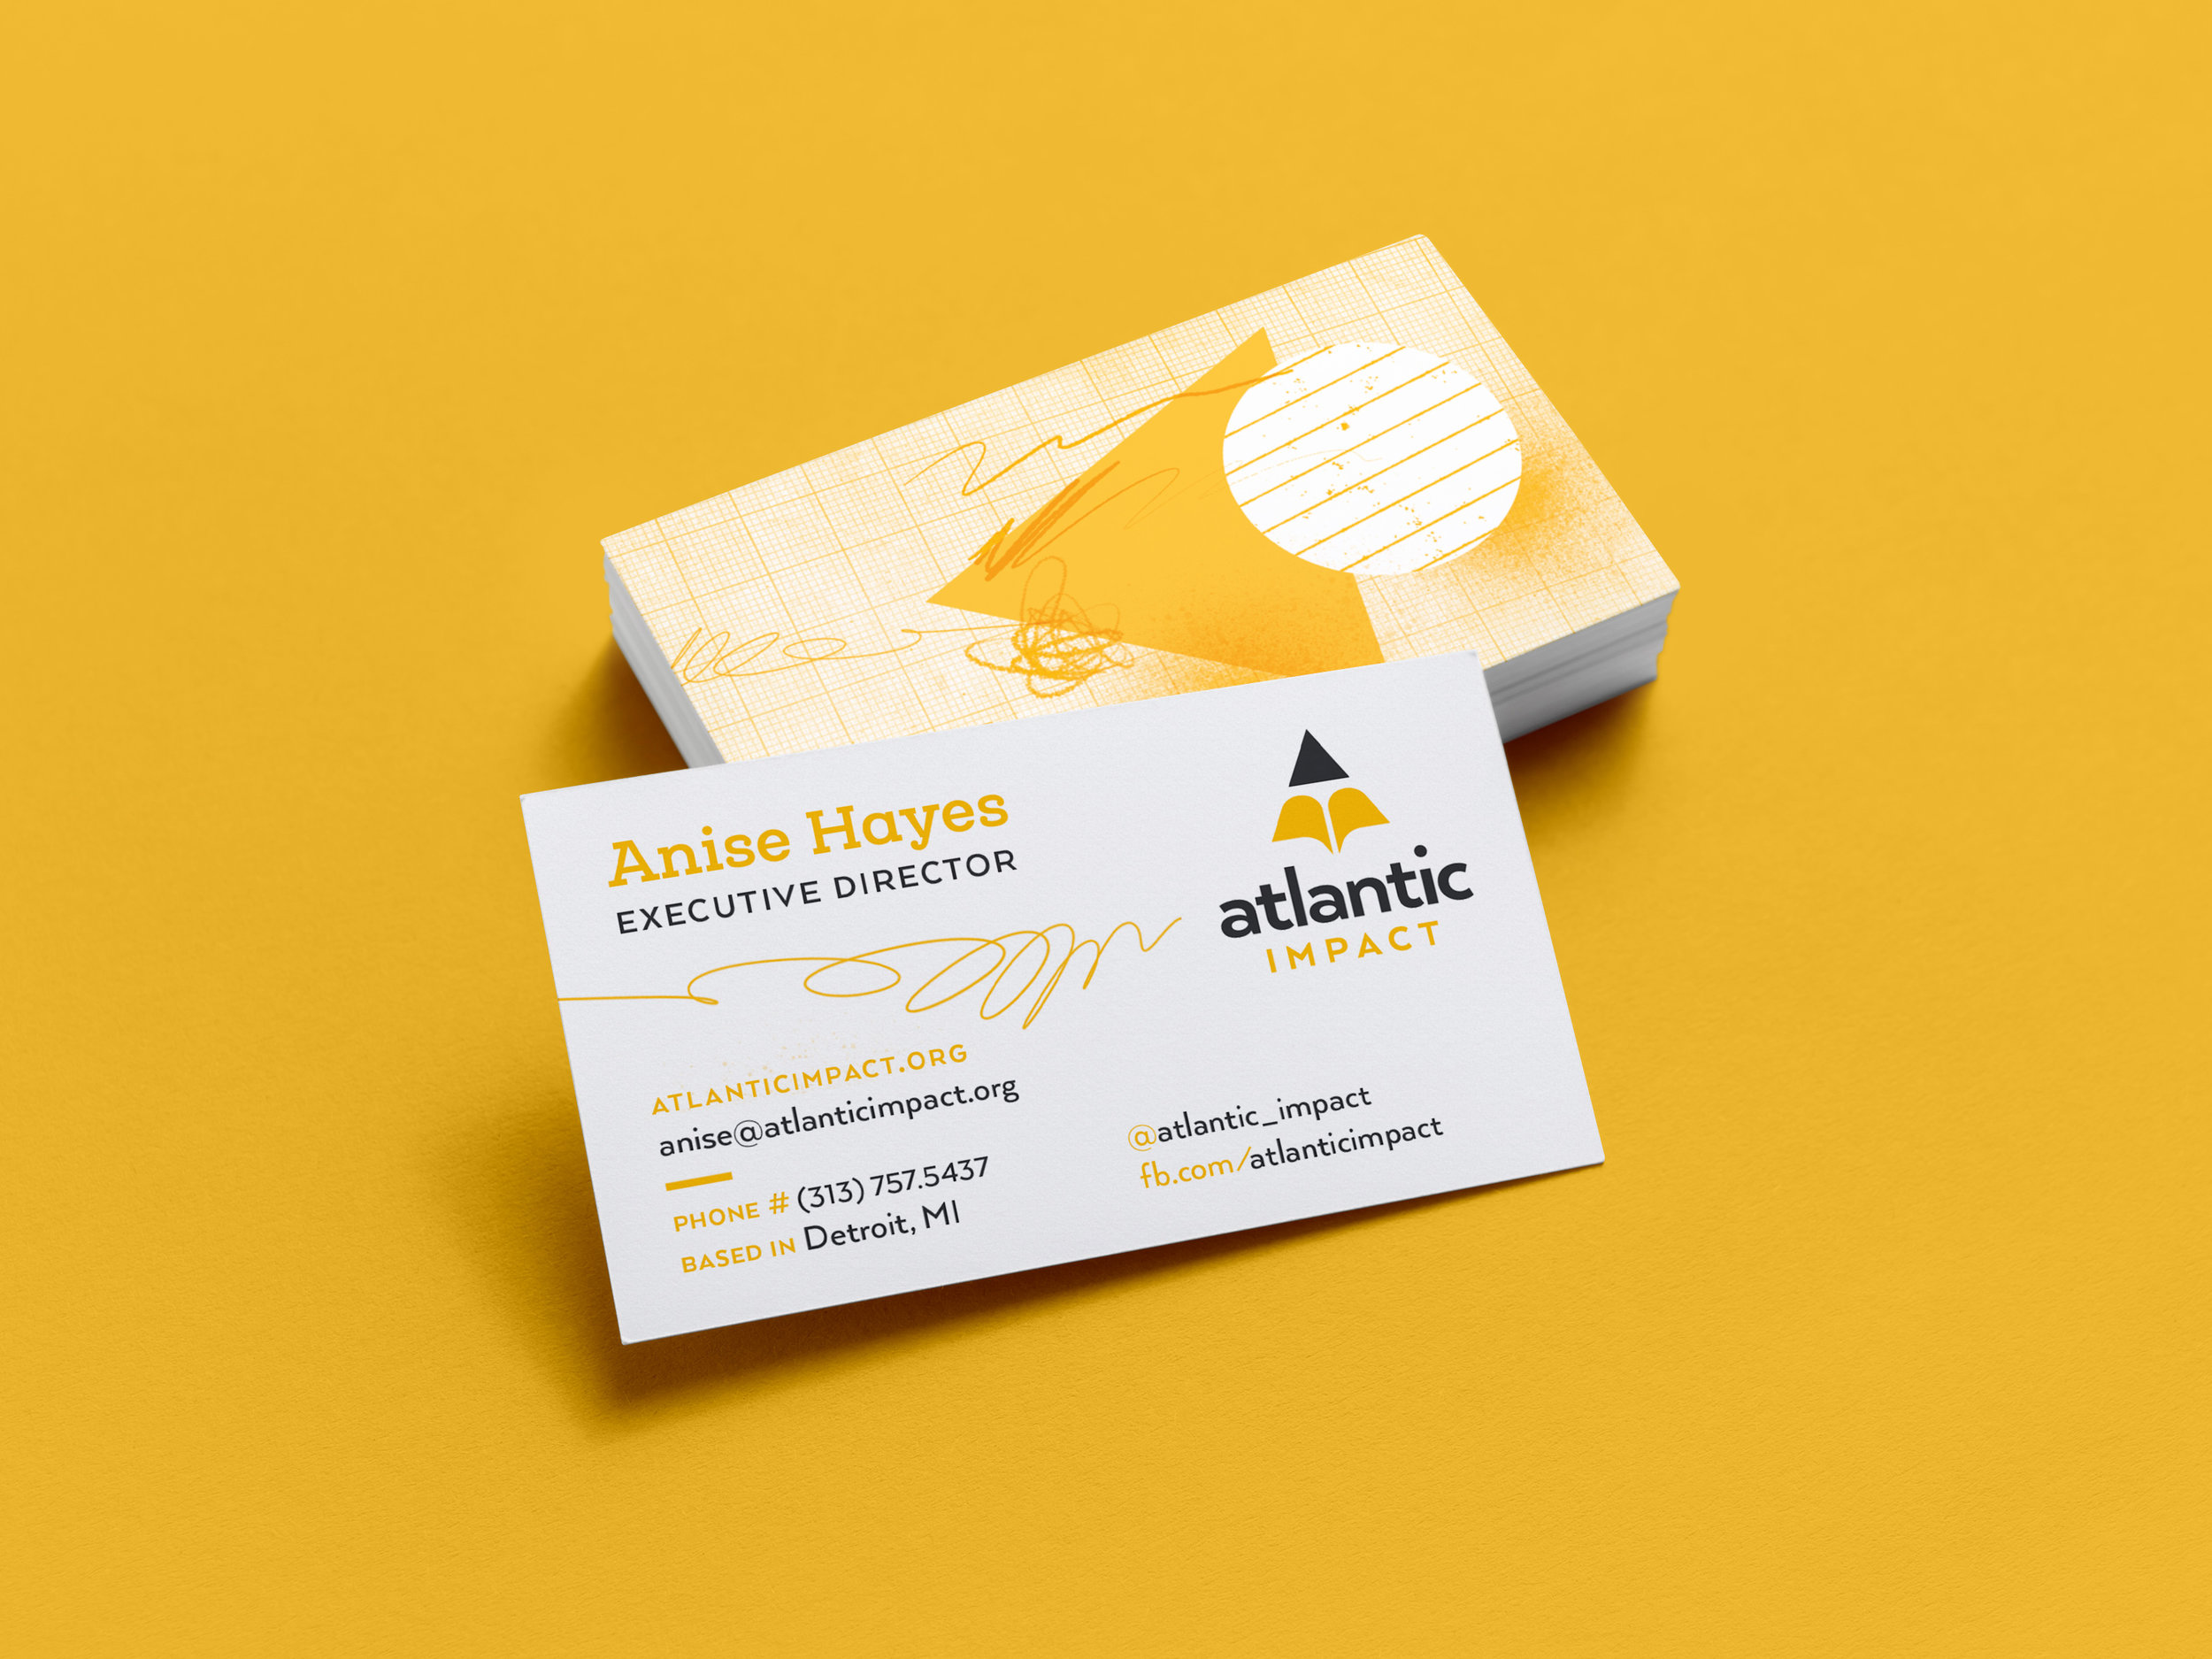 Business cards (backs)